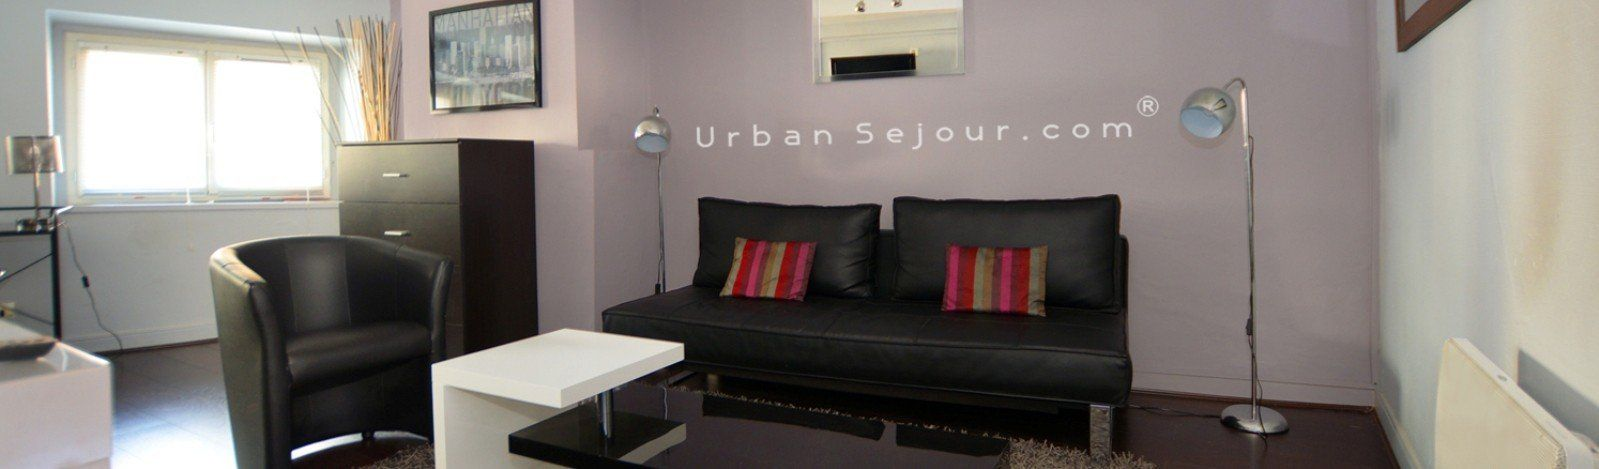 location appartement meubl avec 1 chambre location saisonni re lyon 1 terreaux op ra. Black Bedroom Furniture Sets. Home Design Ideas